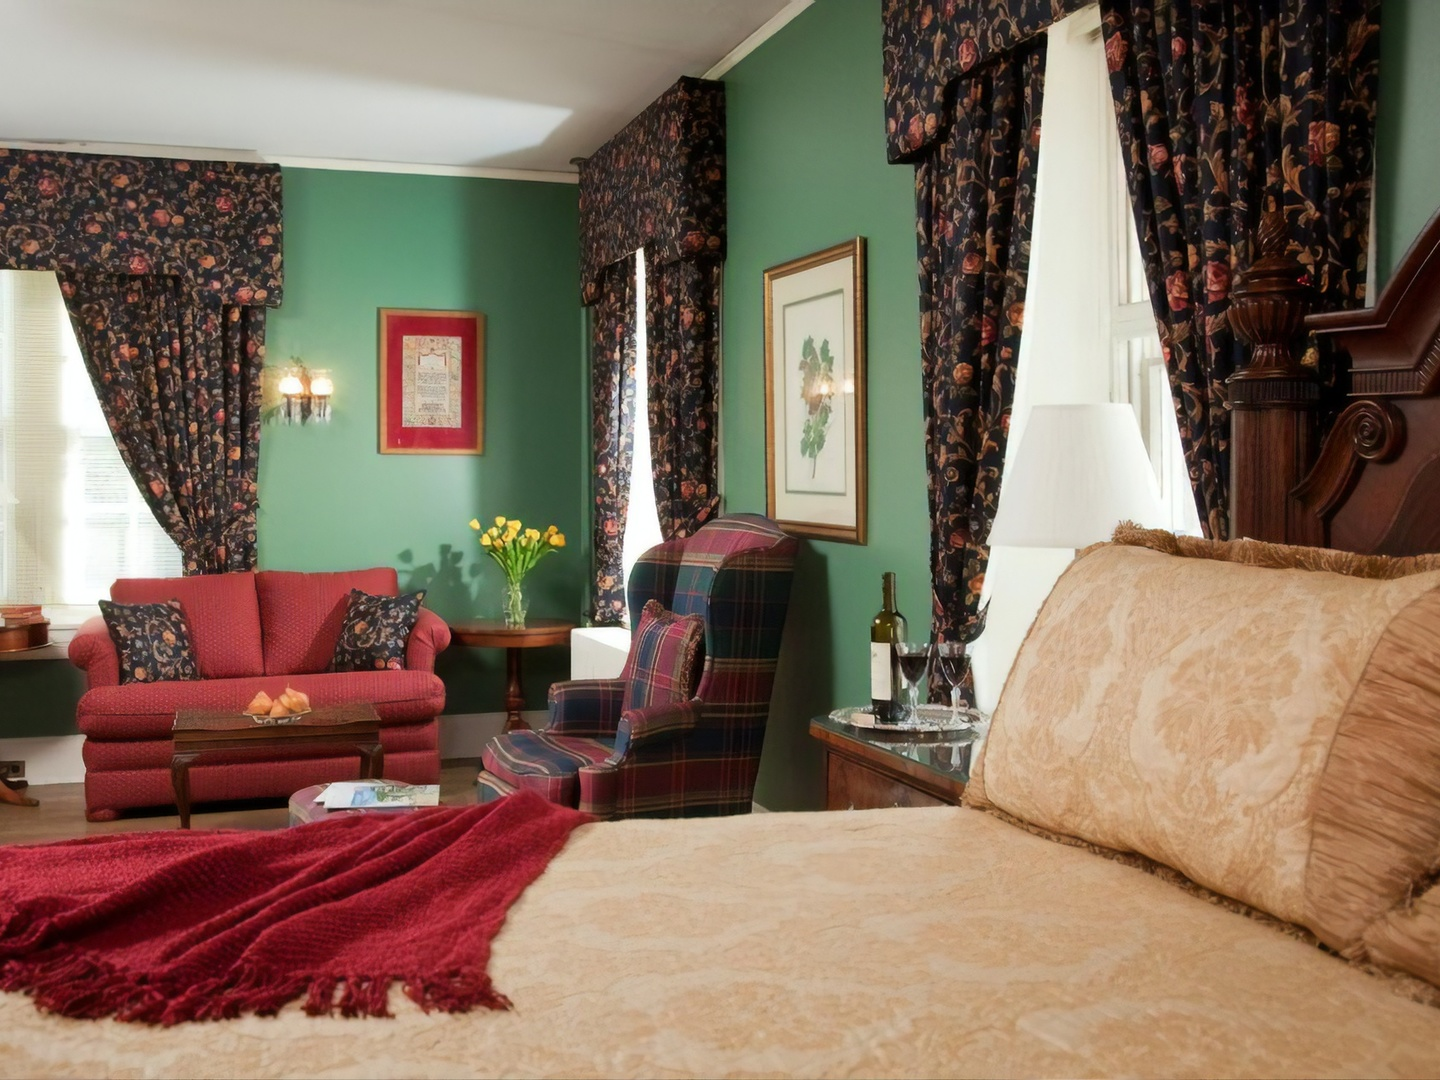 A living room filled with furniture and a red rug at Hamanassett Bed & Breakfast.